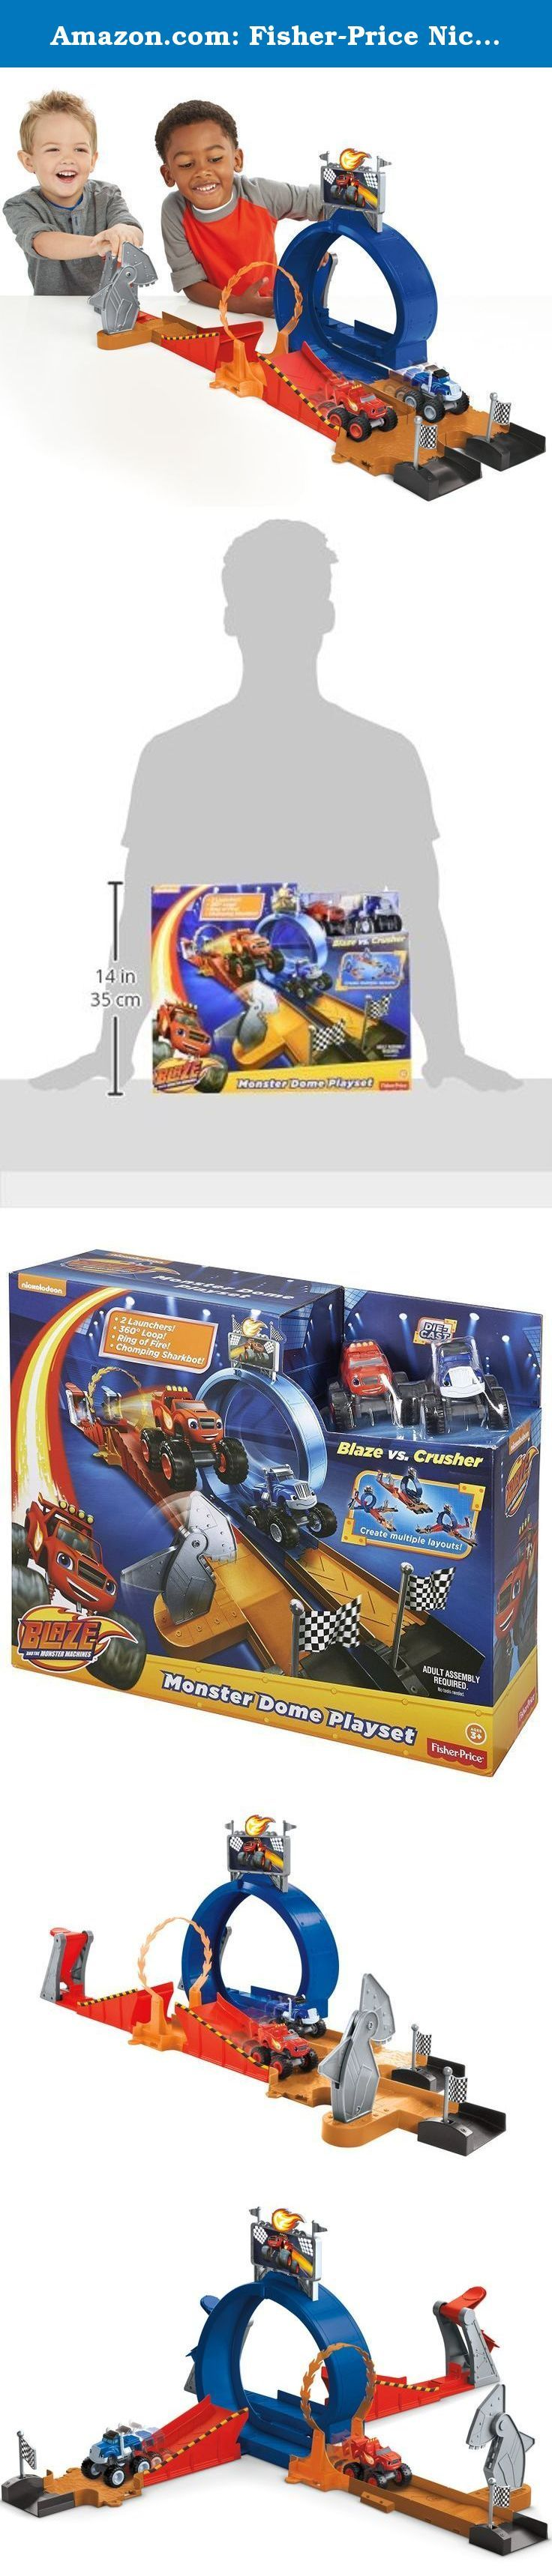 Amazon.com: Fisher-Price Nickelodeon Blaze and the Monster Machines Monster Dome Playset: Toys & Games. It's Race Day at the Monster Dome and crafty Crusher will stop at nothing to beat Blaze... even if that means building a chomping Sharkbot! Will Blaze race past the shark's mighty bite and speed on to win the race or will Crusher finally cross the finish line first? This track set can be configured into multiple layouts so race fans can recreate all the action and adventure of Blaze and...